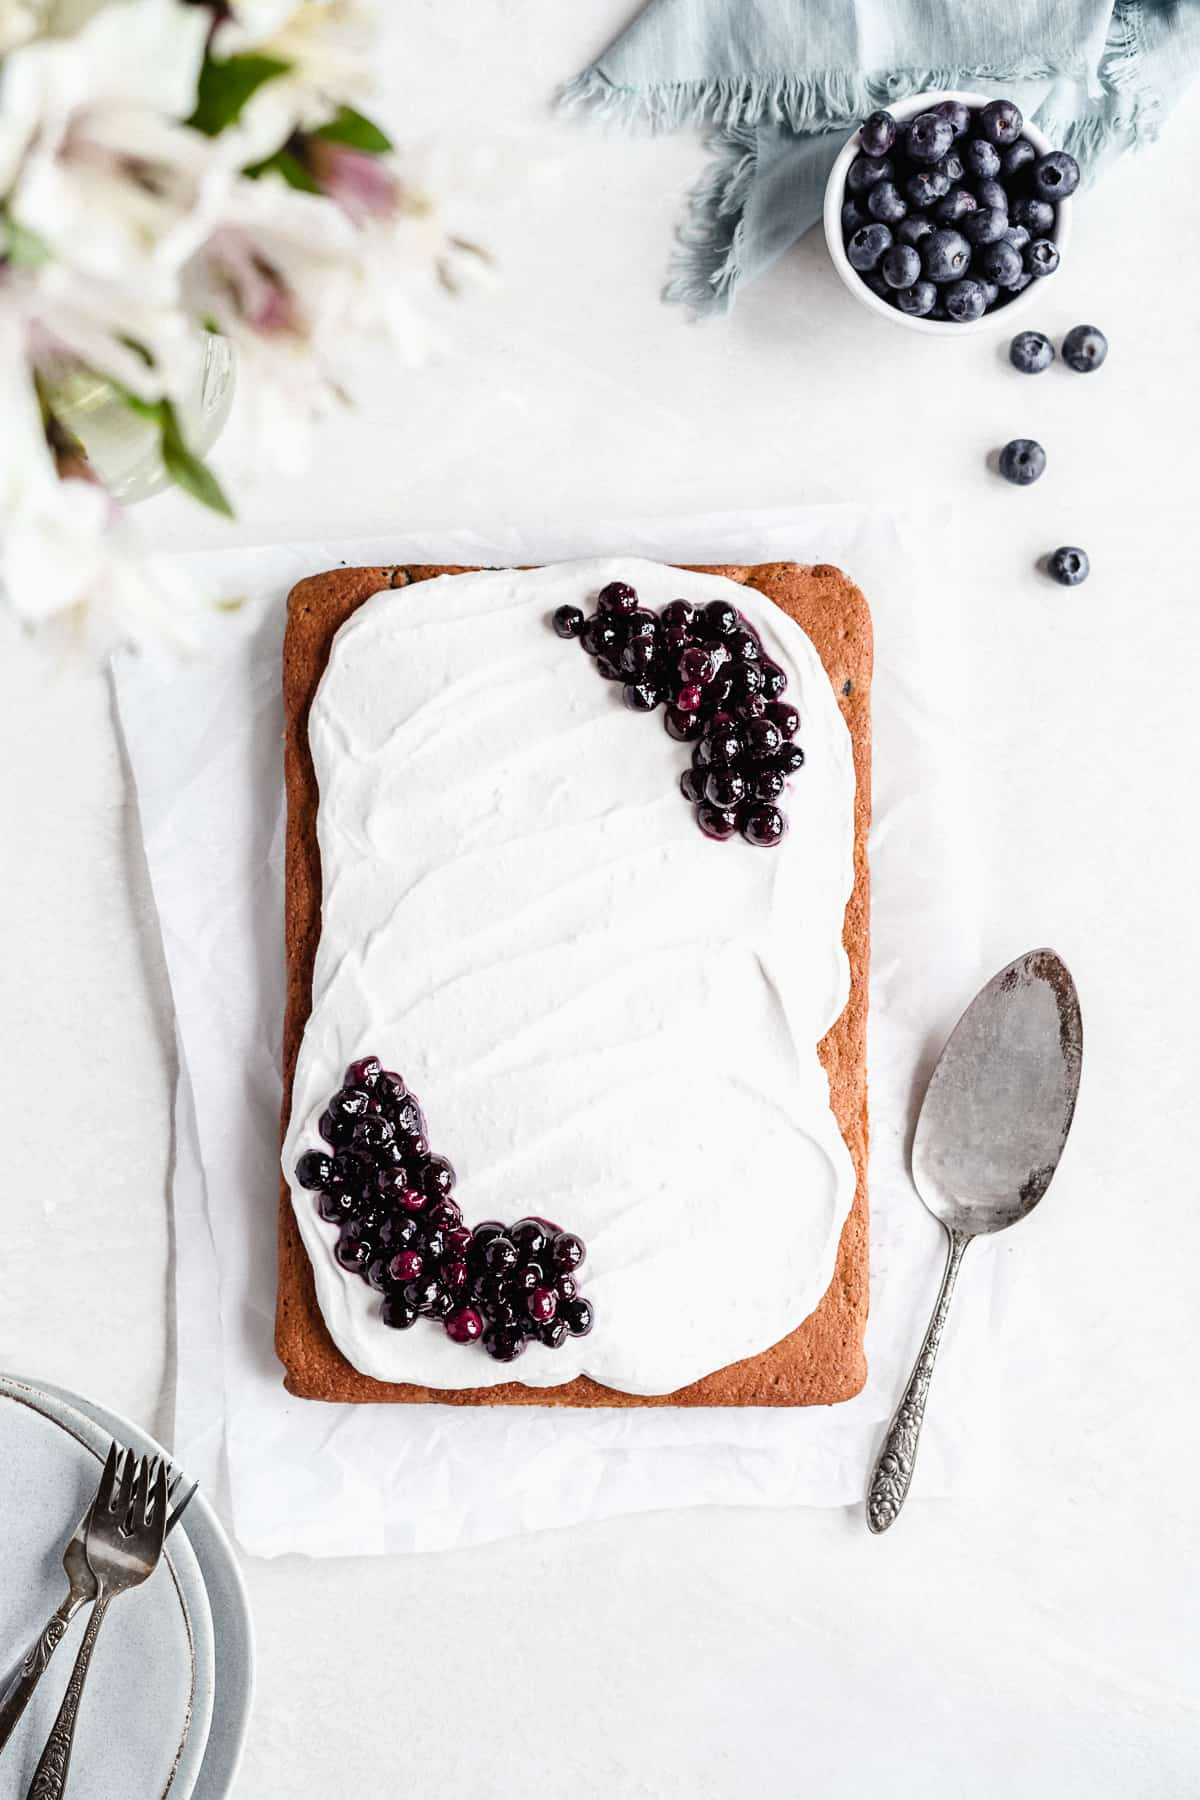 Overhead photo of completed Blueberry Vanilla Sheet Cake on a white marble slab.  A silver cake server is laying nearby.  Several small plates and forks can be seen in the background.  Additional blueberries are sprinkled around.